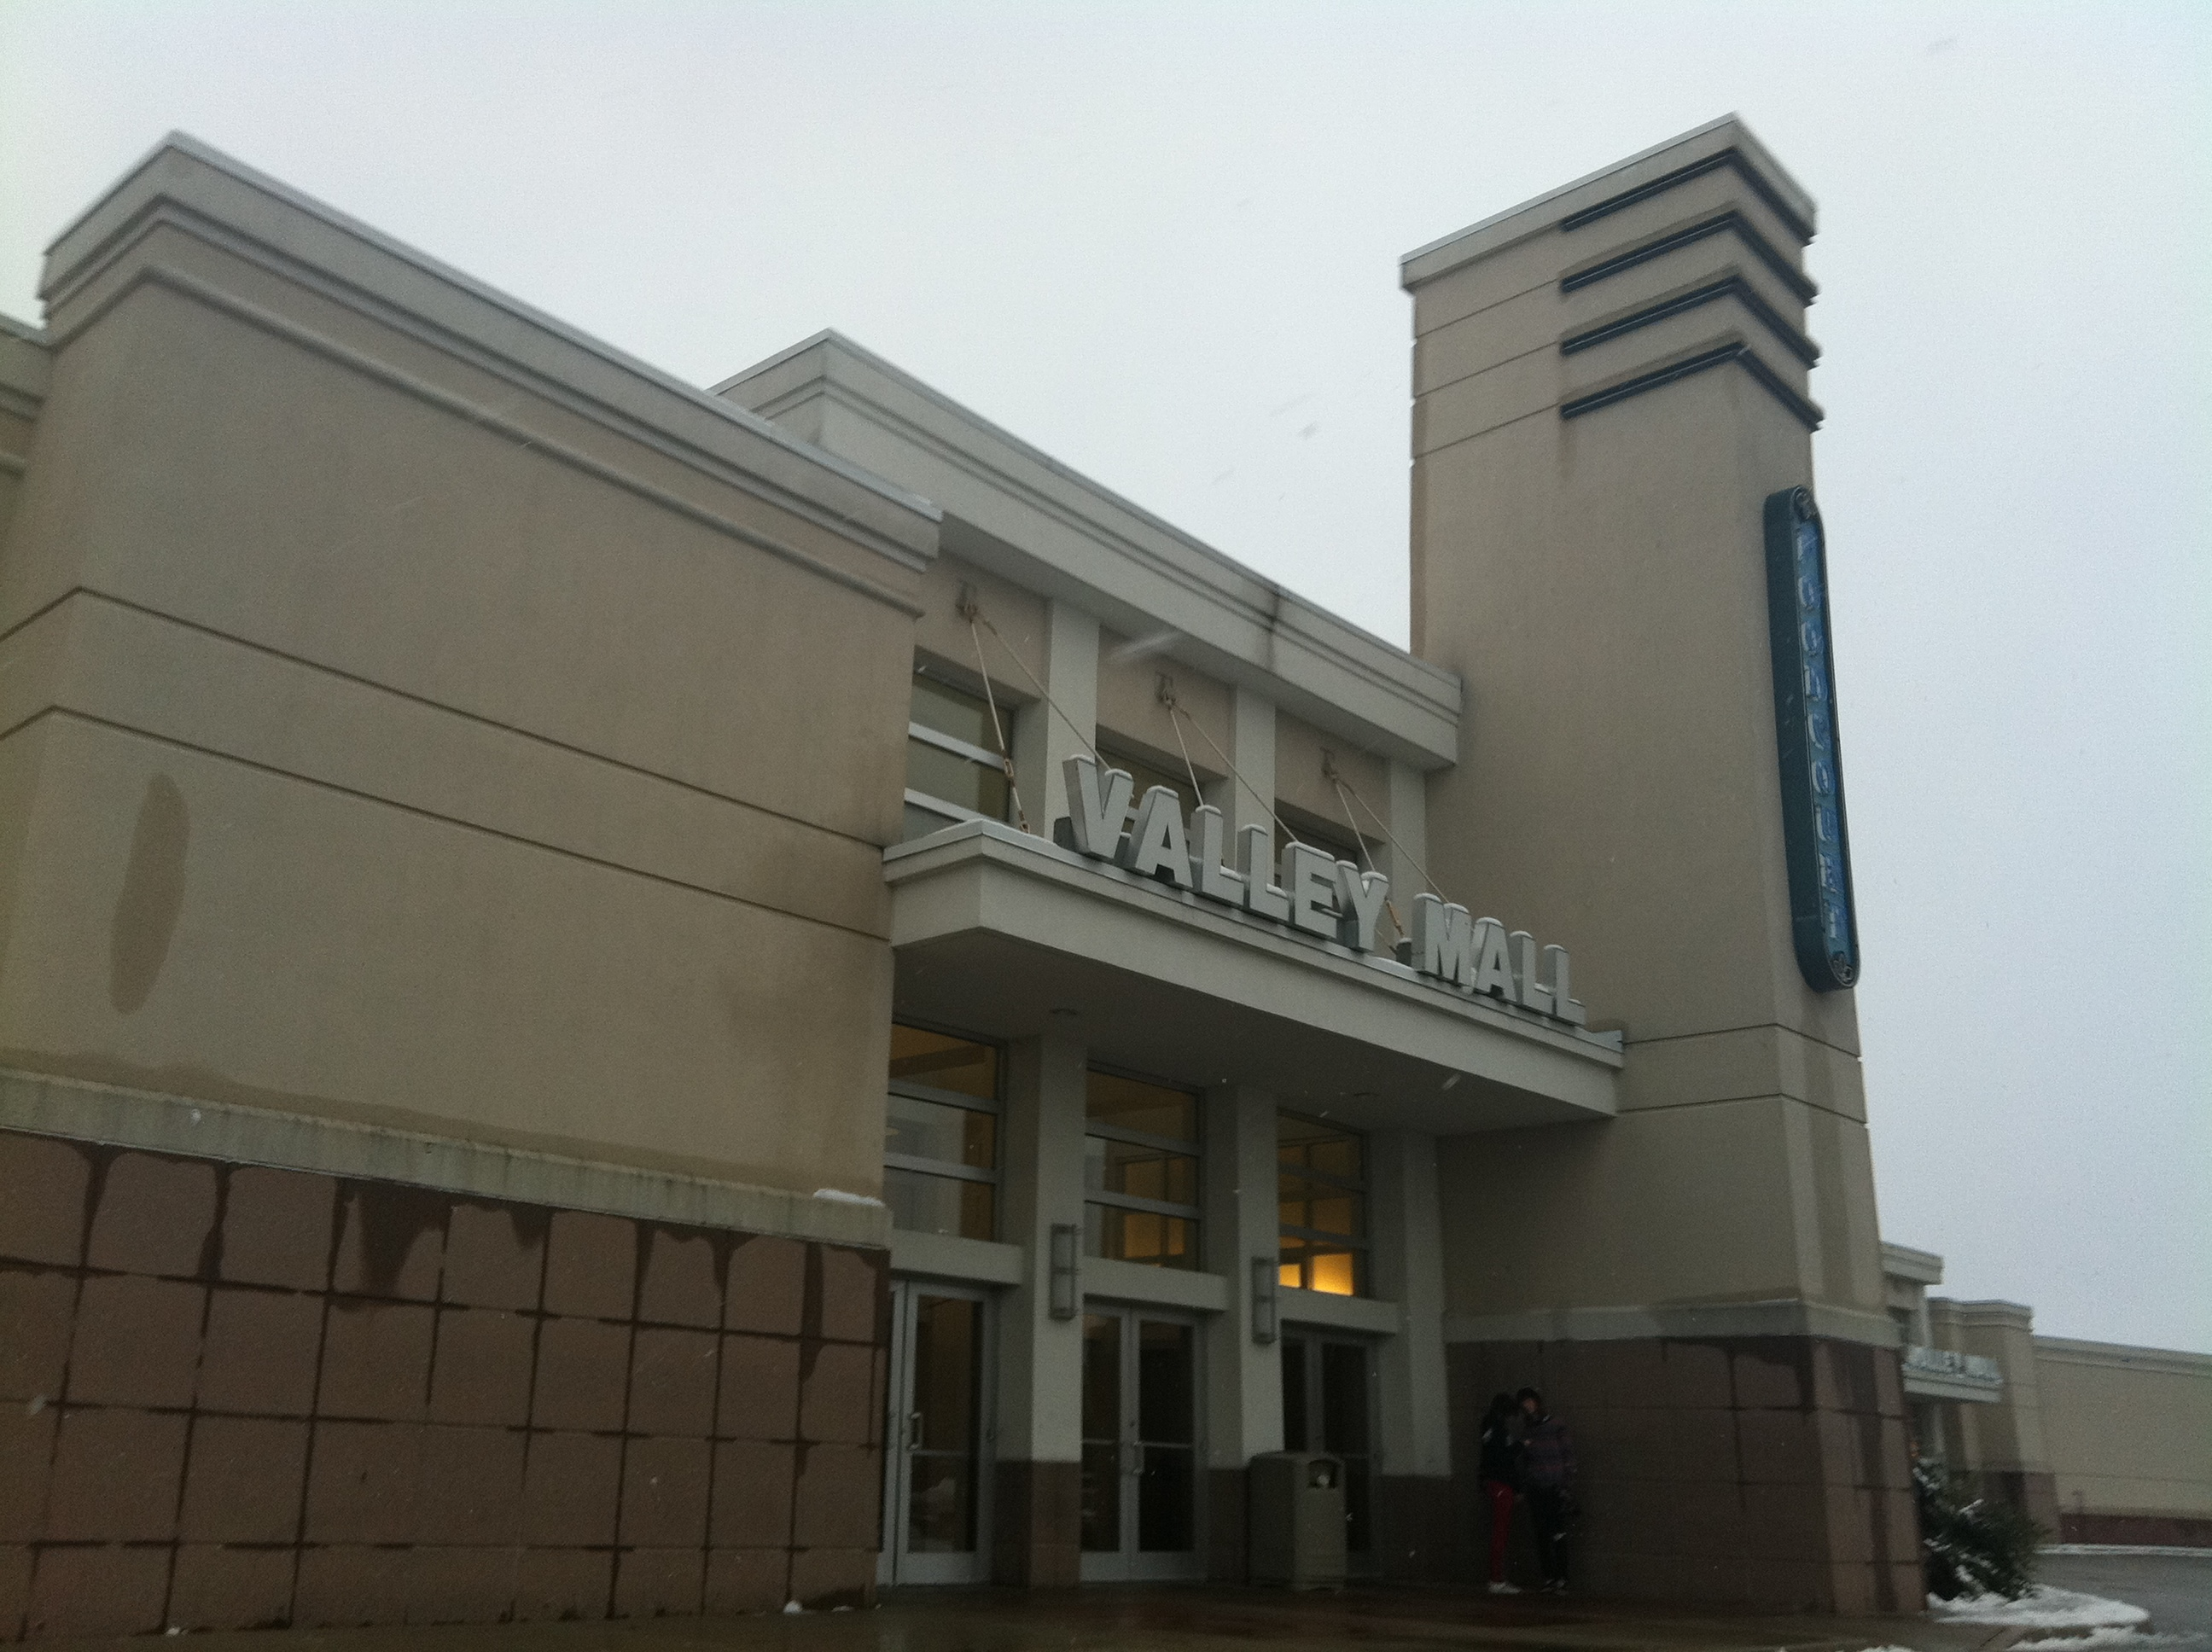 Valley Mall Hagerstown Wikipedia